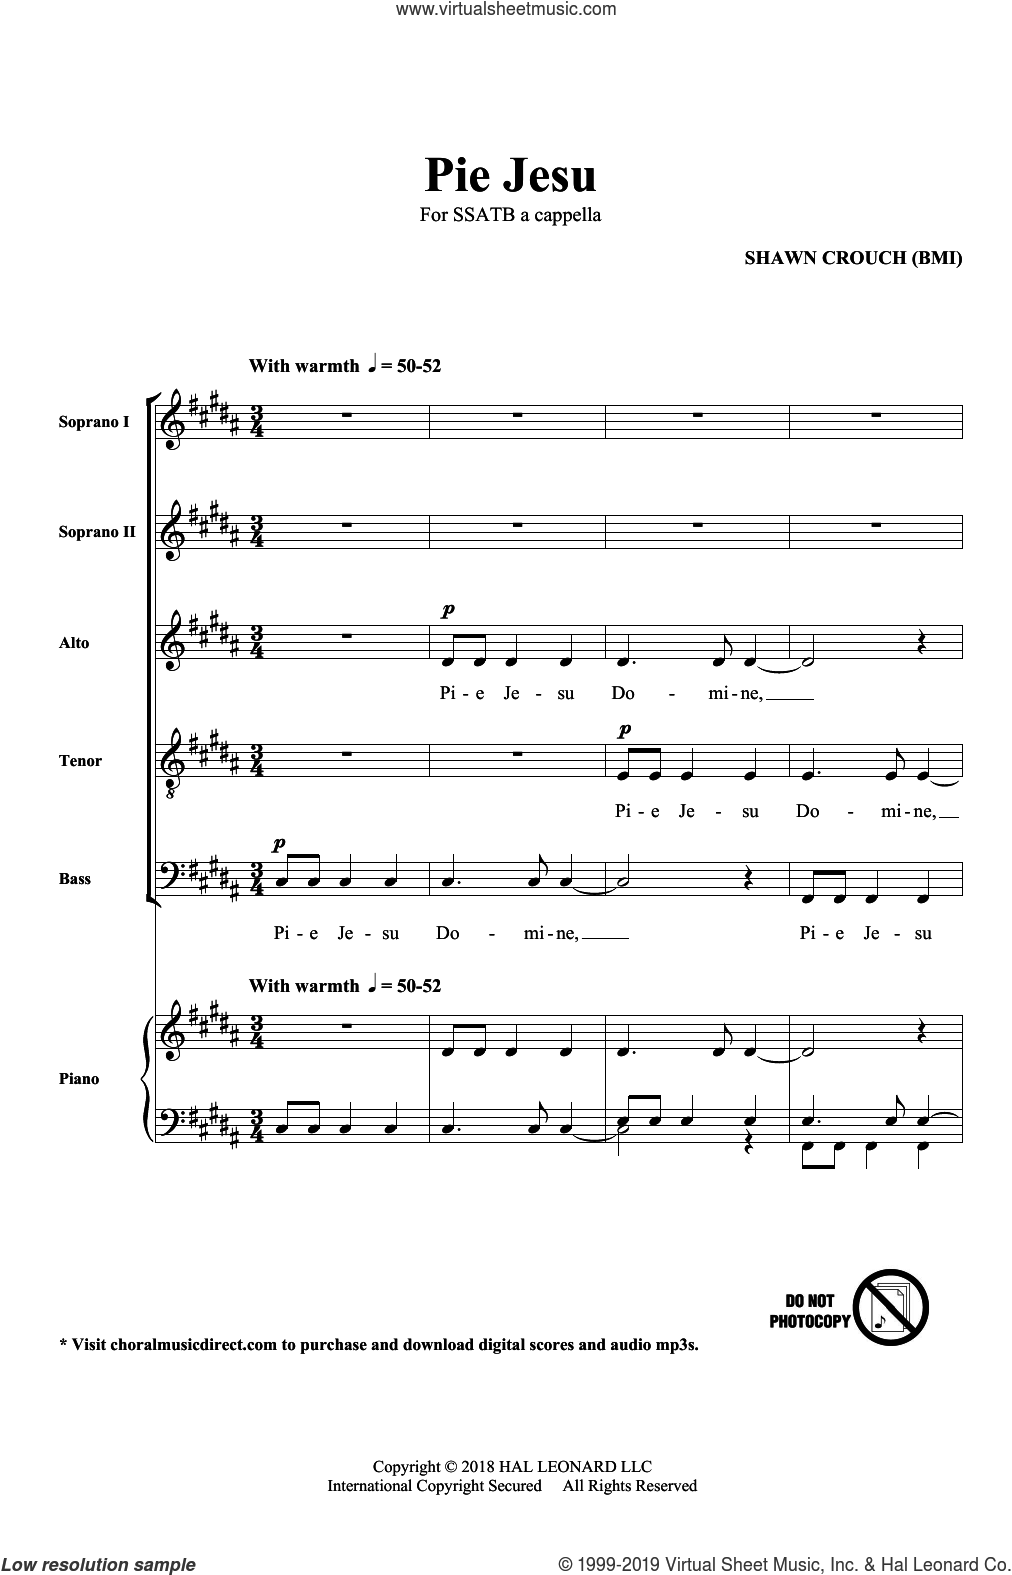 Pie Jesu sheet music for choir (SATB: soprano, alto, tenor, bass) by Shawn Crouch, intermediate skill level